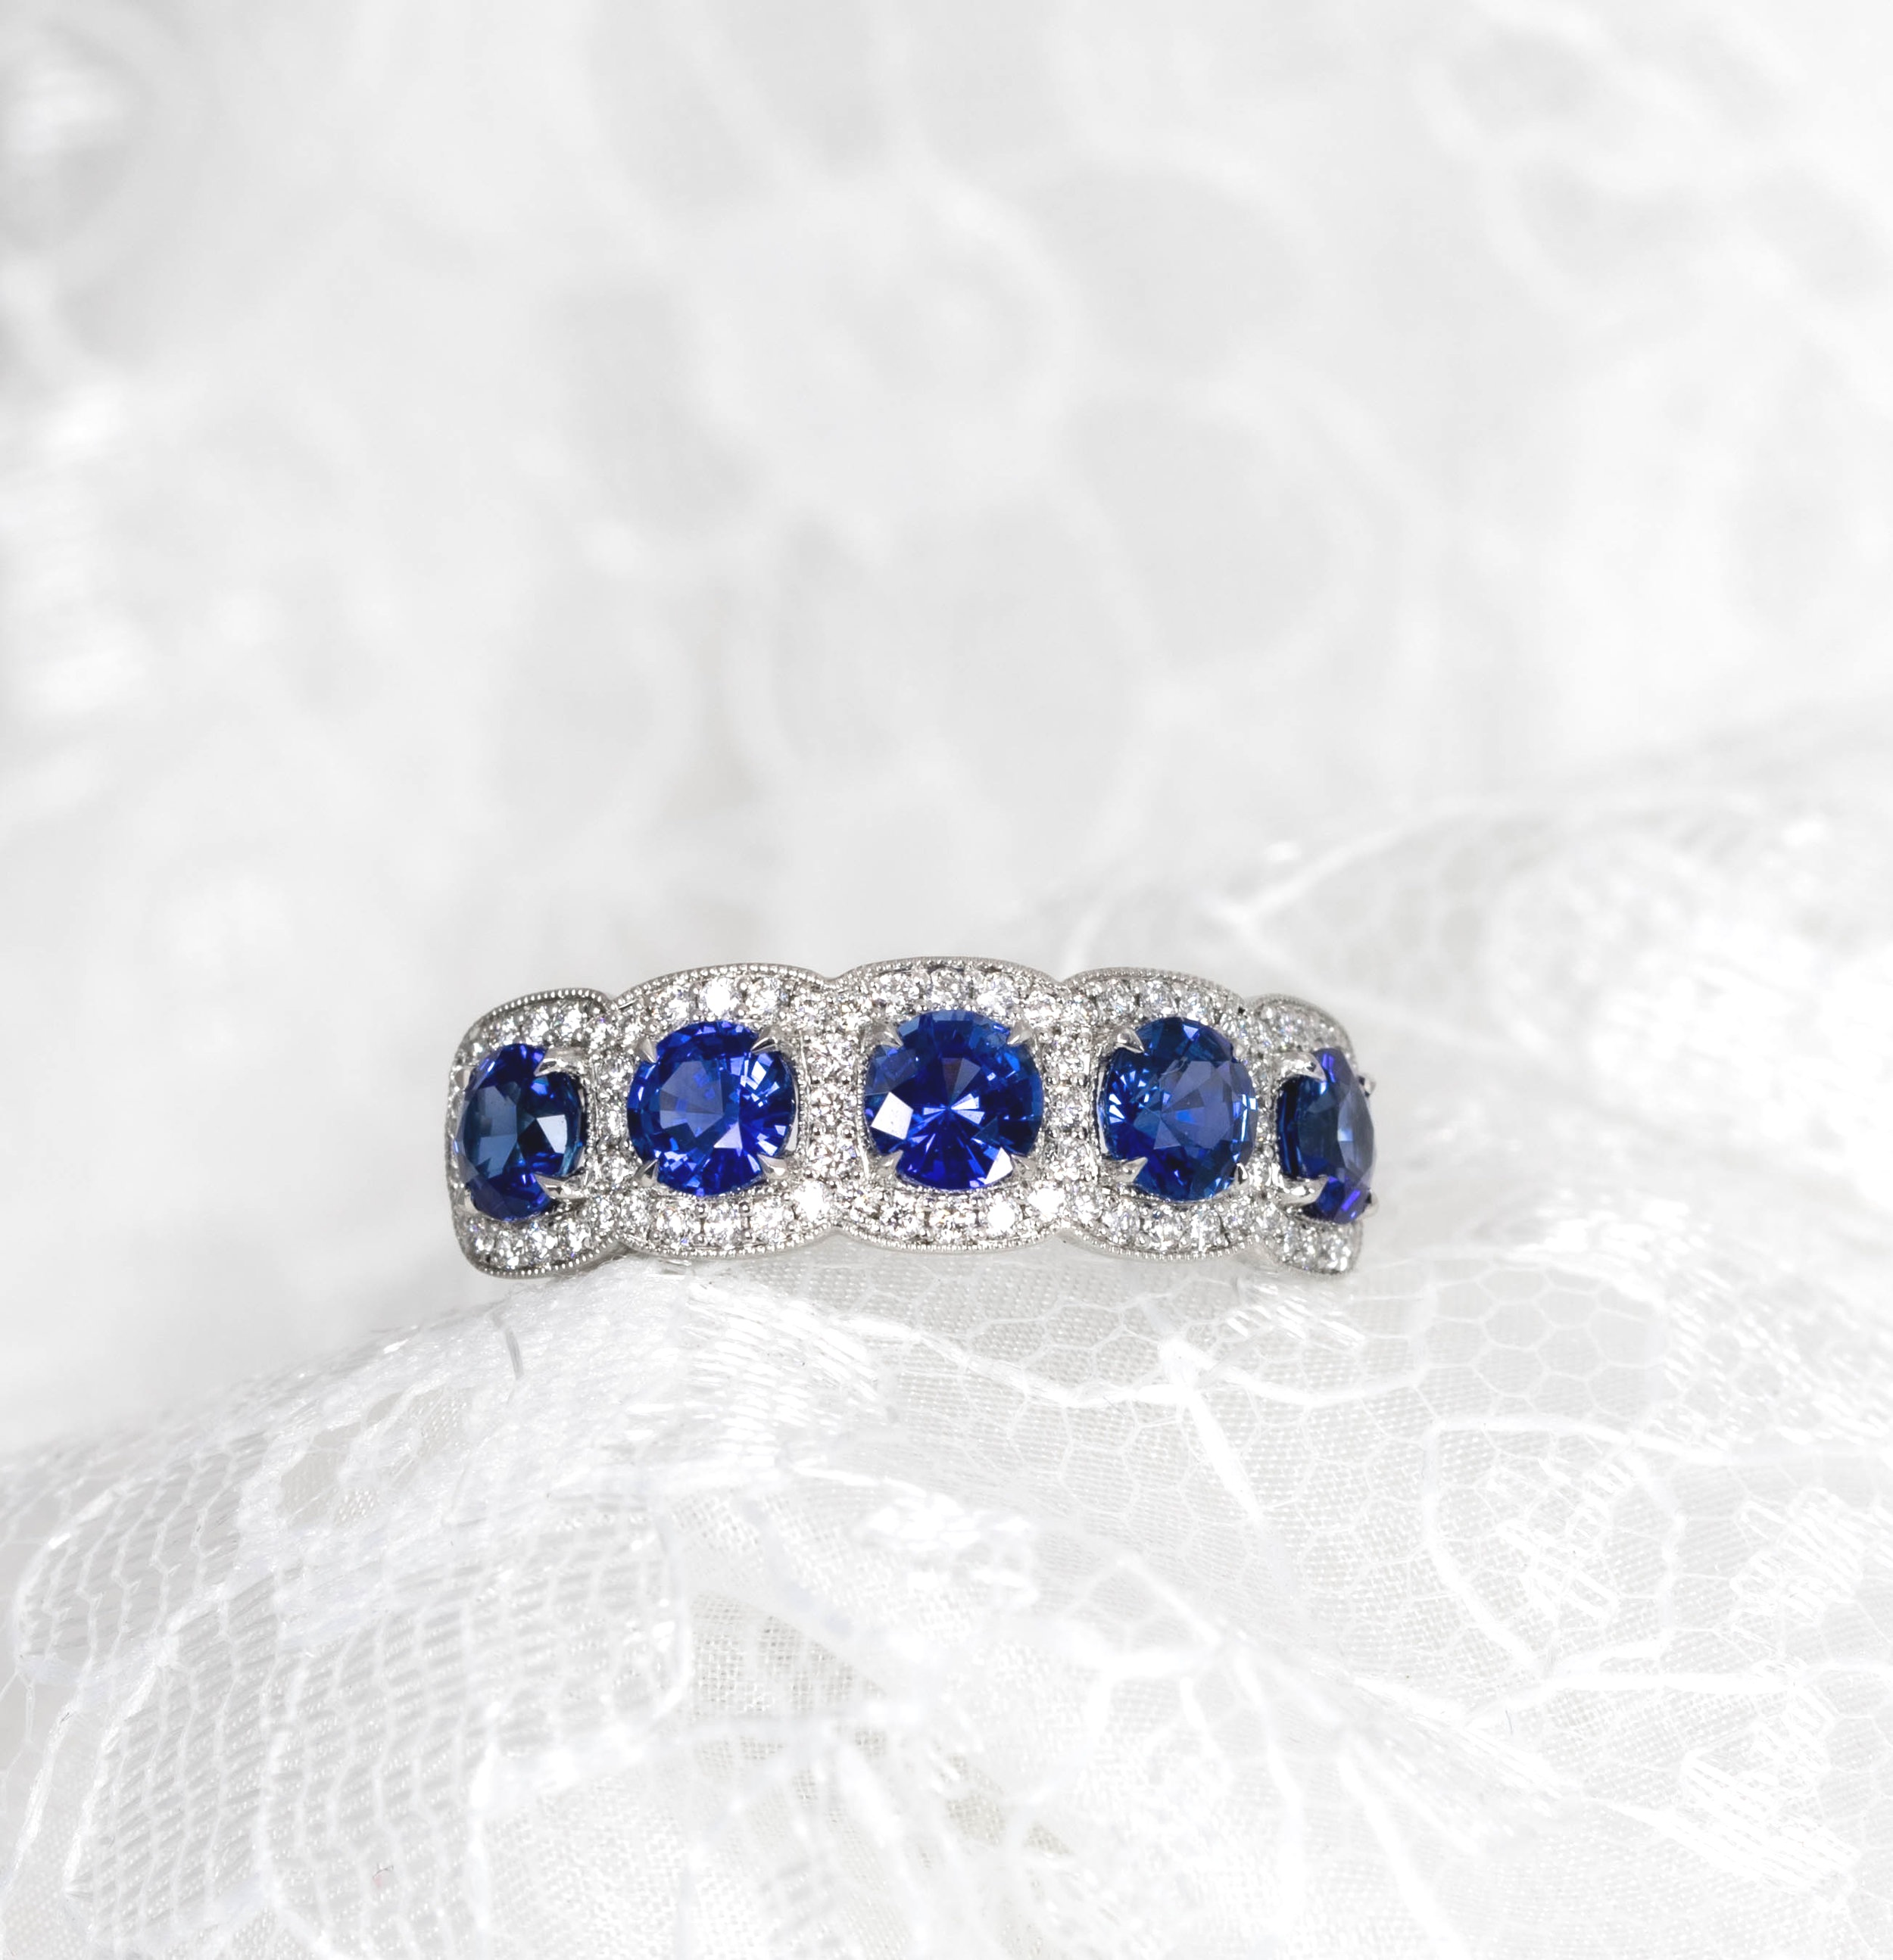 Platinum mounted sapphire and diamond 5 cluster half hoop ring. Made in Chichester, England.